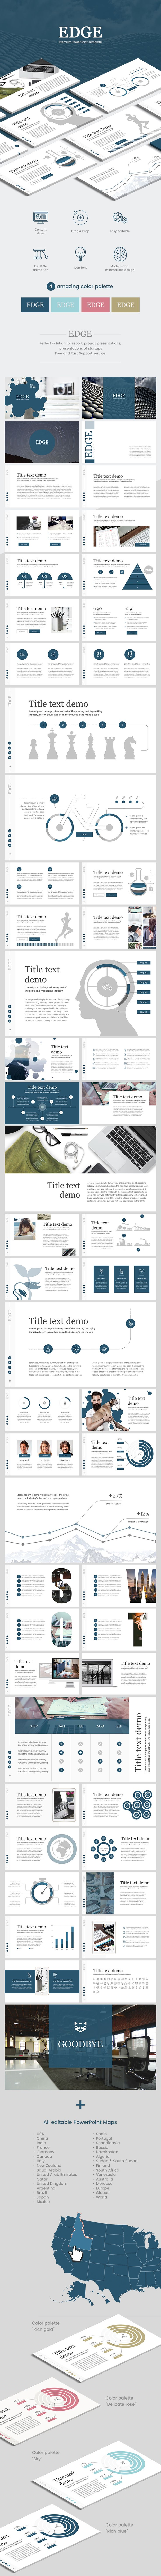 "Download: http://site2max.pro/edge-powerpoint-template/   ""EDGE"" PowerPoint template #edge #marketing #powerpoint #slide #slides #template #pptx #business #report #modern"